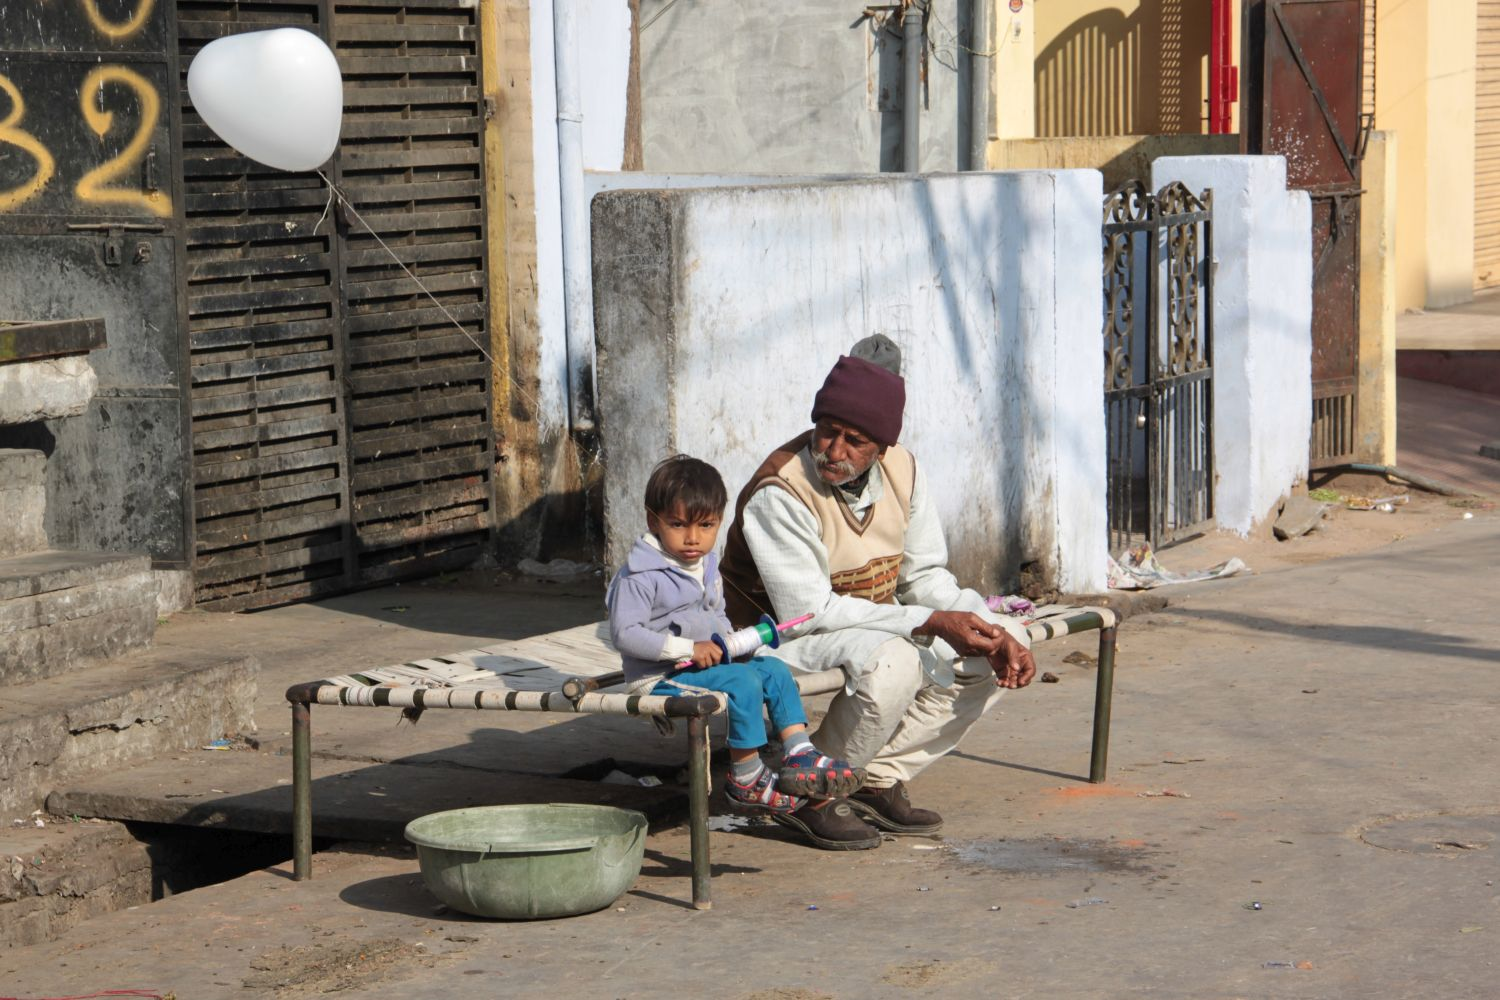 Jaipur | Rajasthan | Pink city | Grand-father and child | ©sandrine cohen